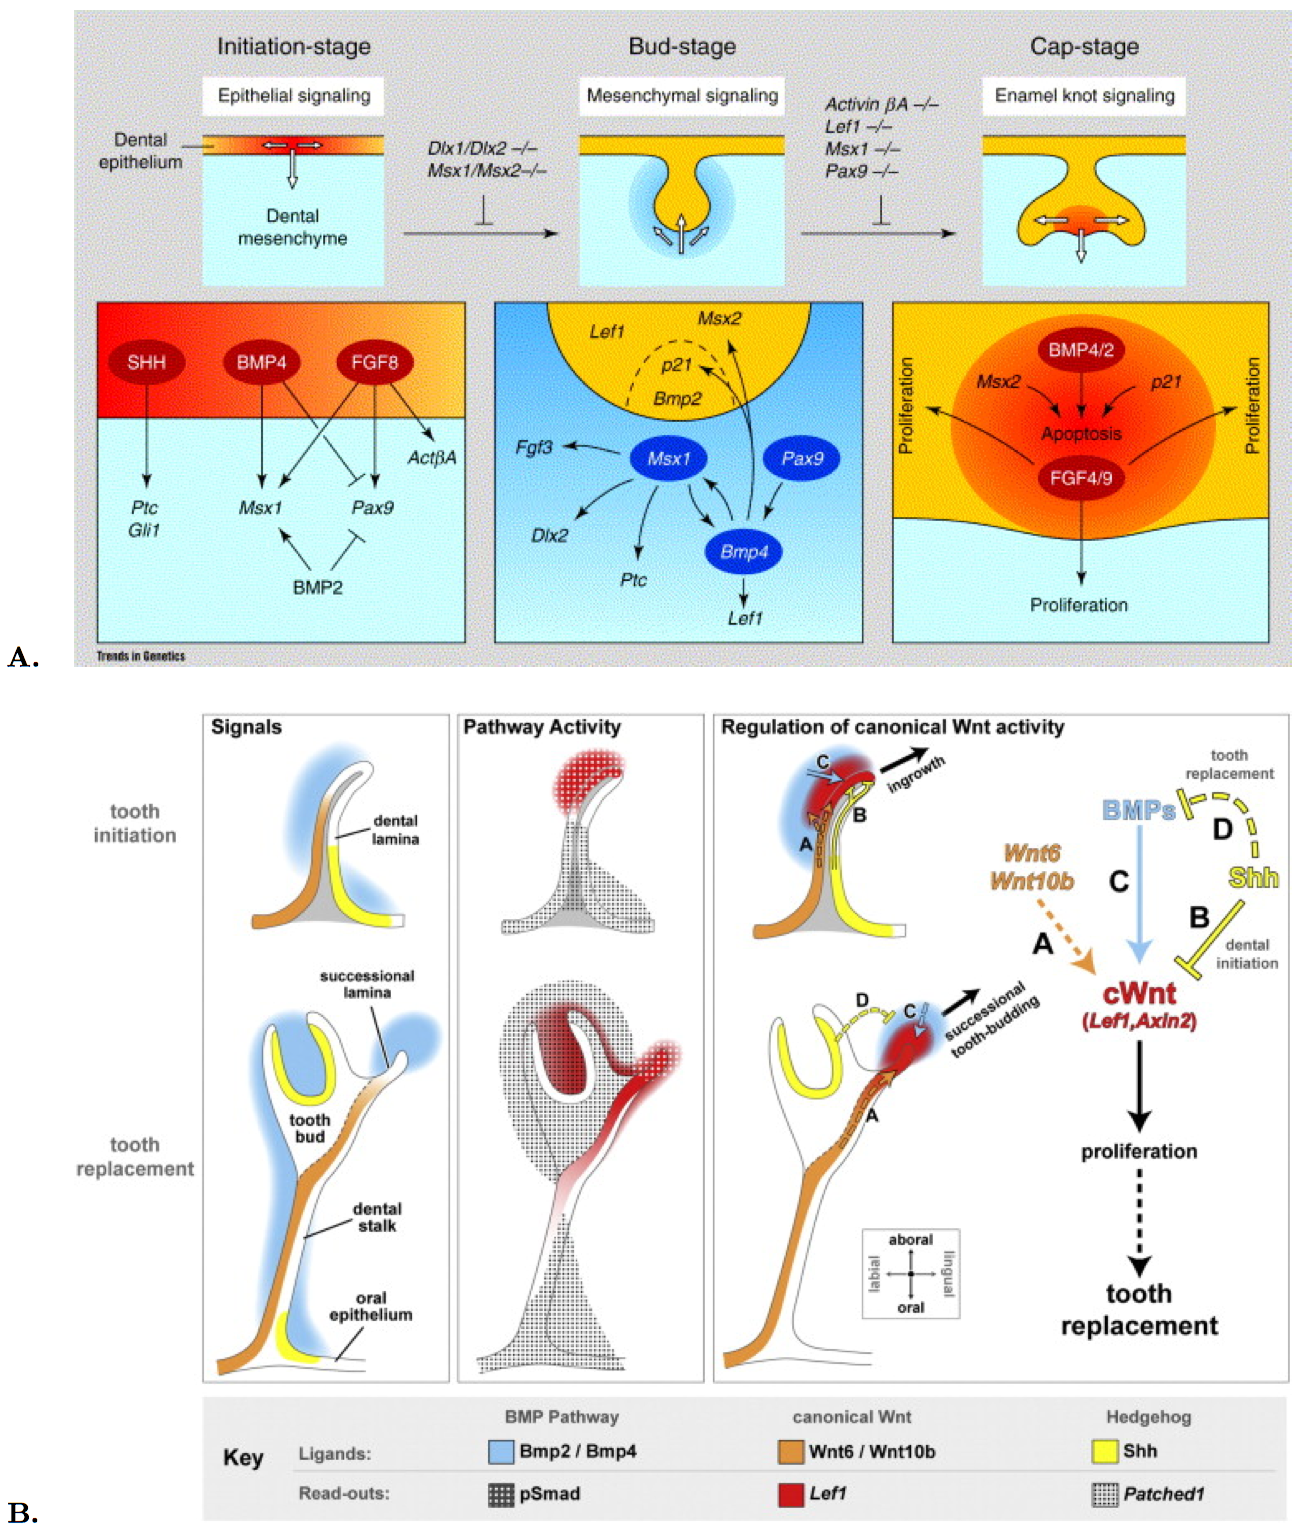 Gene expression and molecular signaling during tooth development in mouse (A) and snake (B).